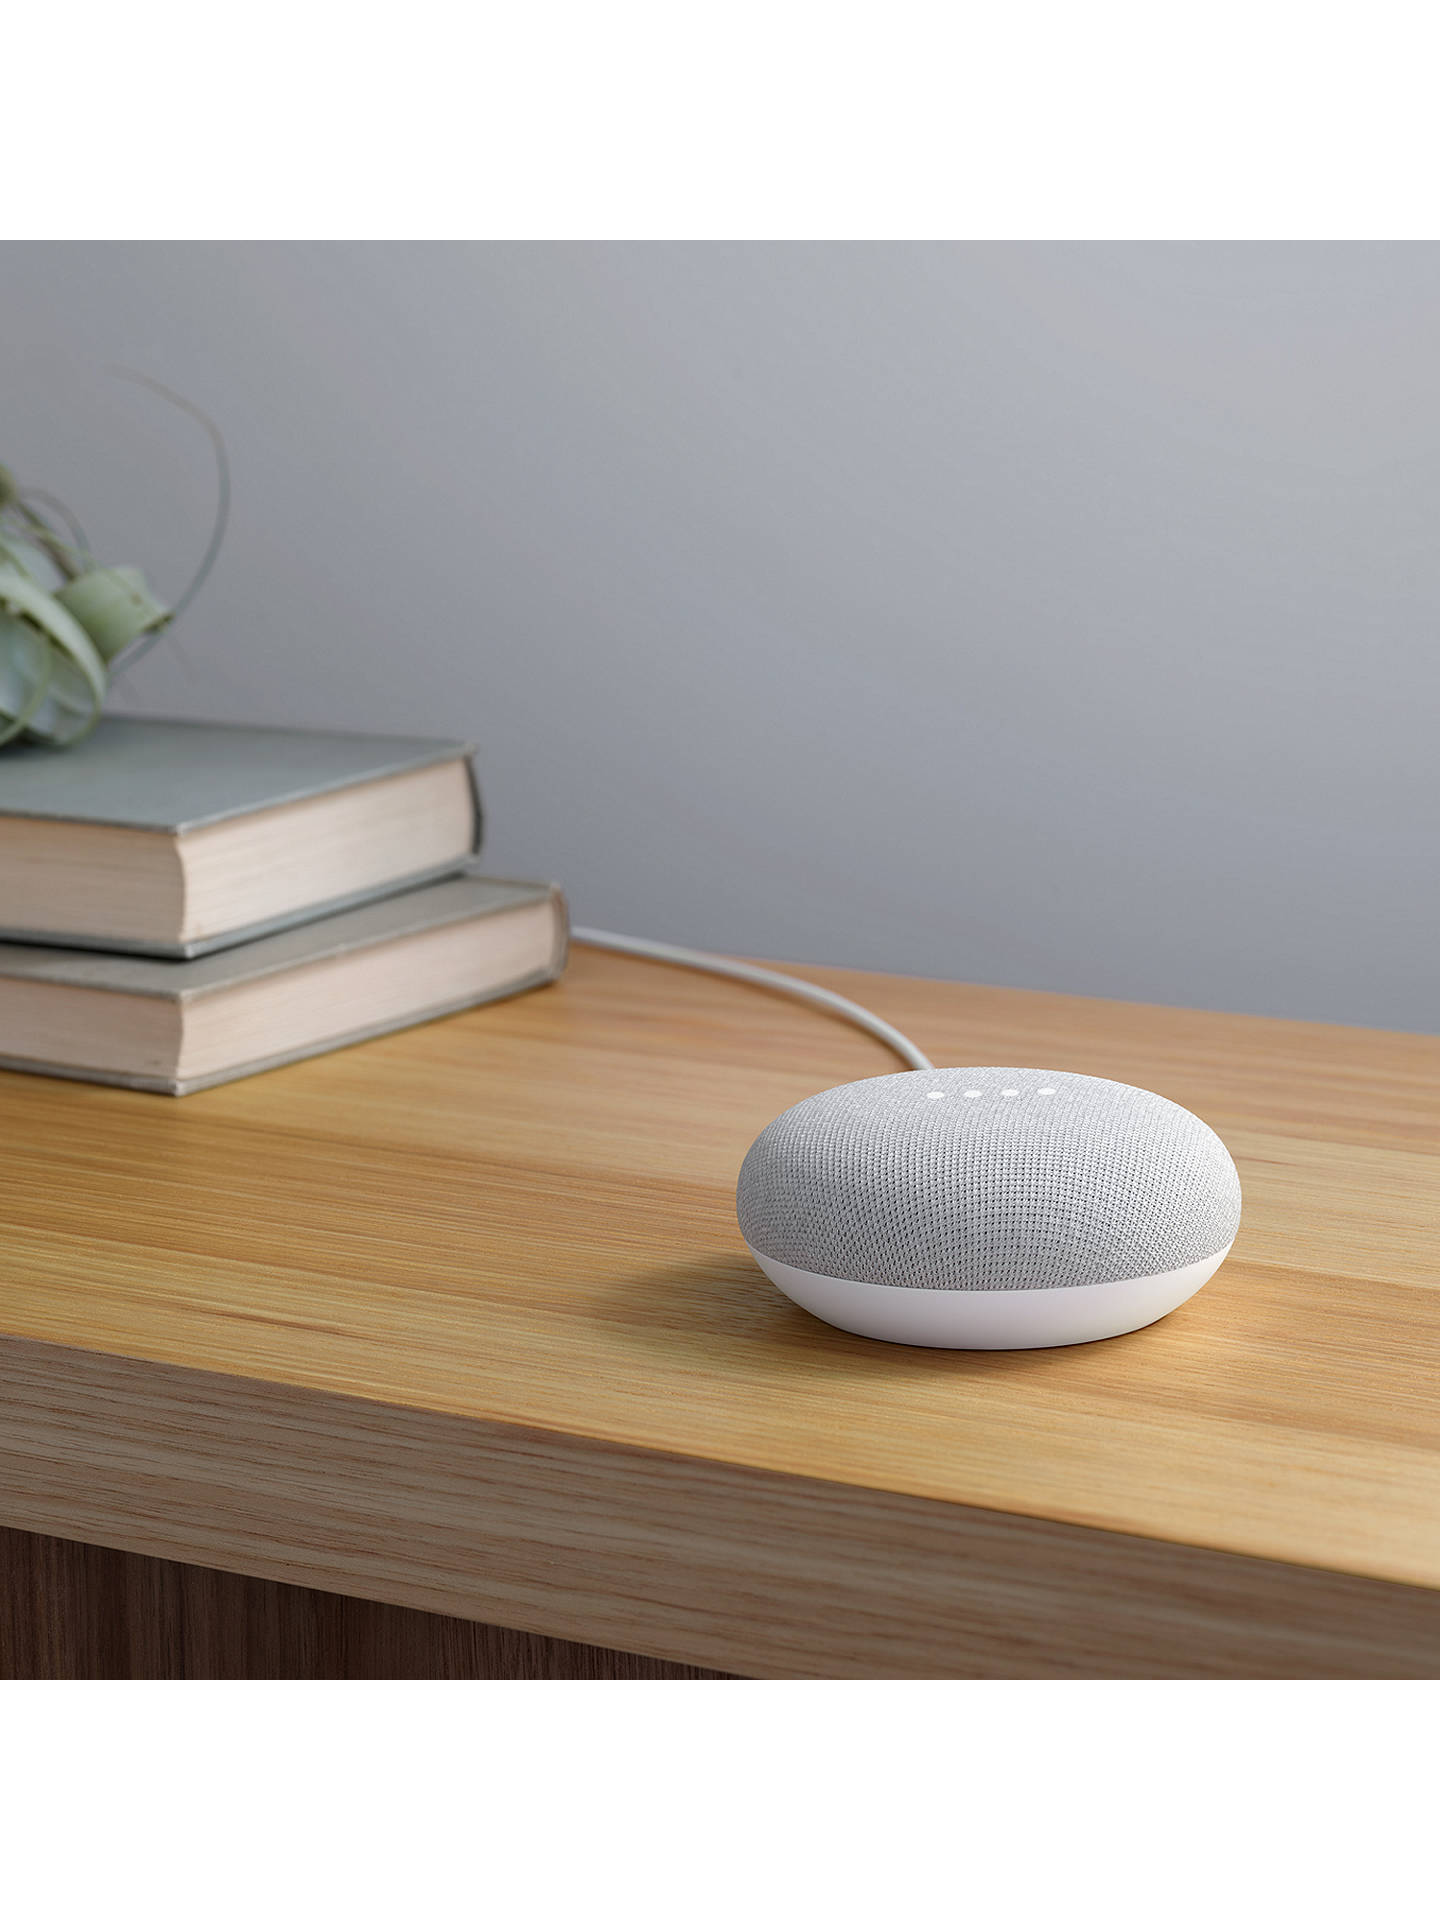 Google Home Mini Hands-Free Smart Speaker, Chalk